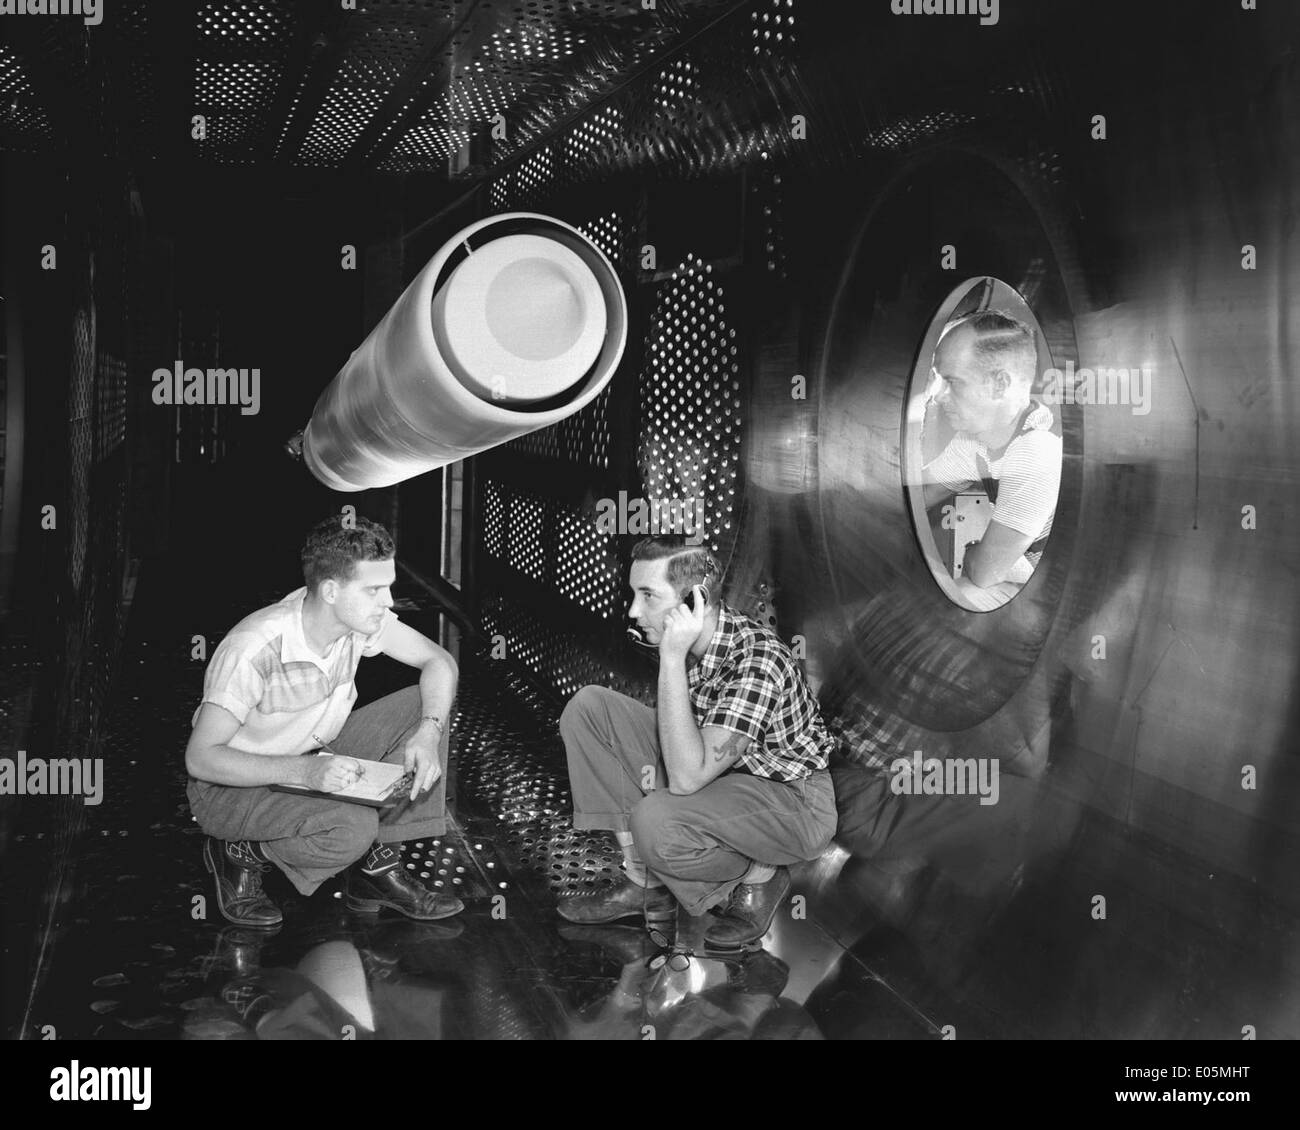 Supersonic Wind Tunnel Test Section - Stock Image